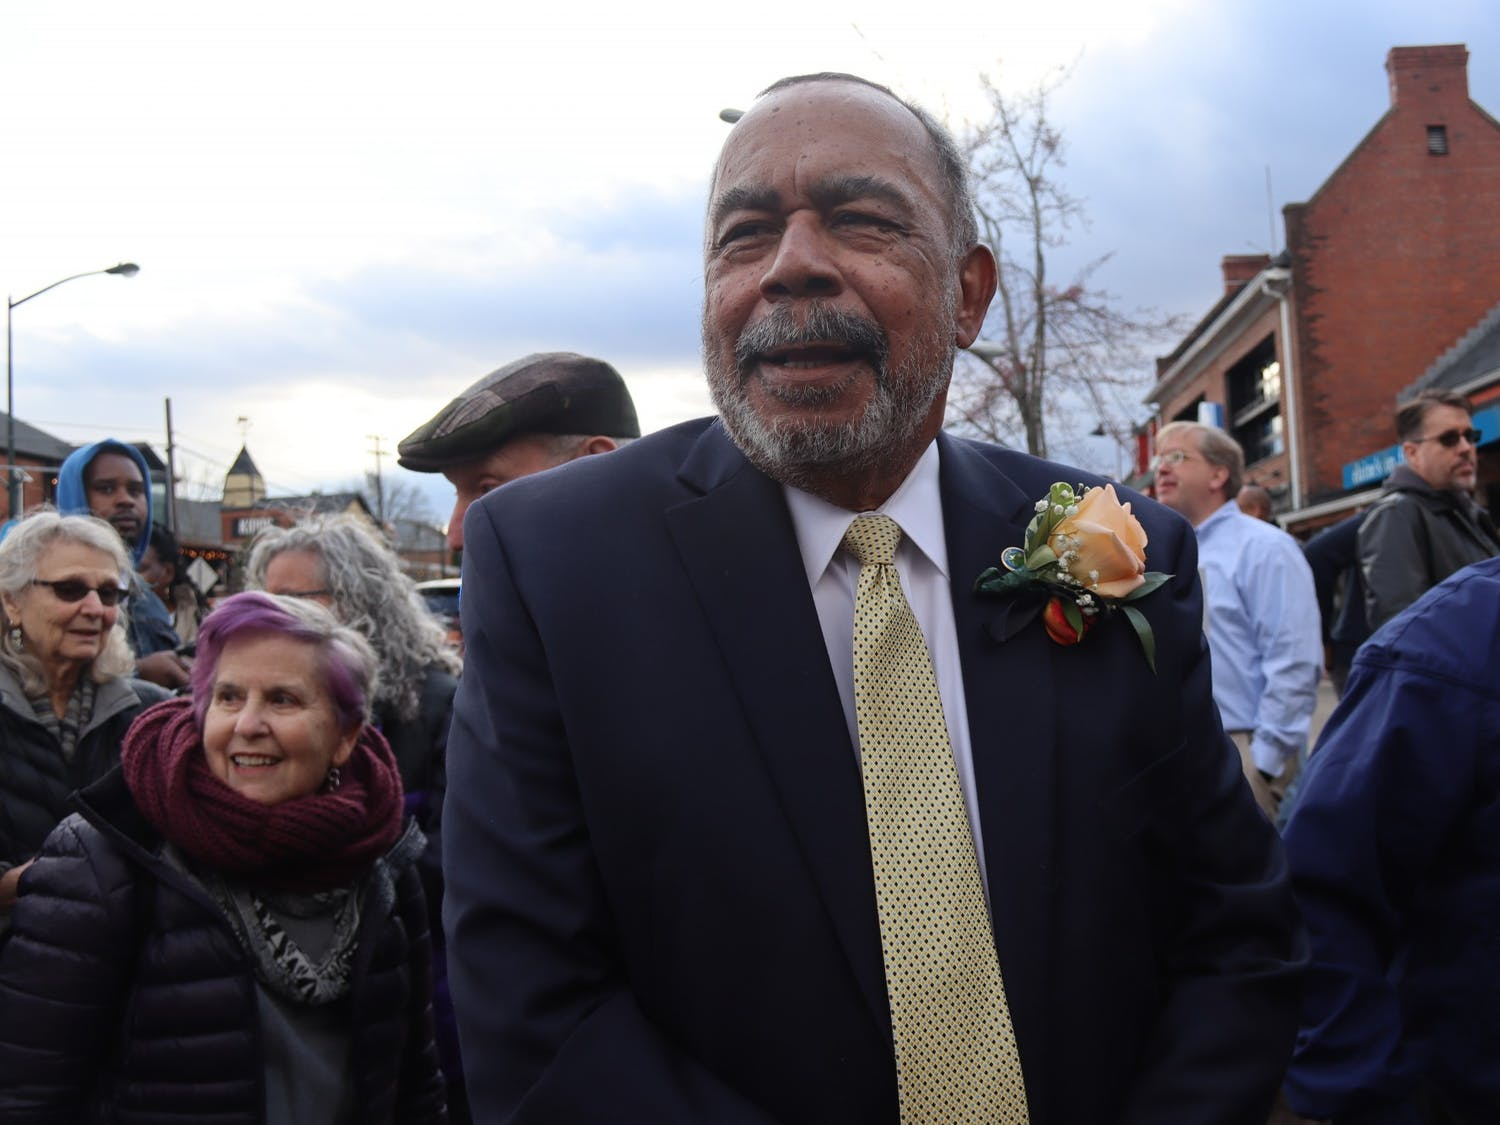 James Merritt is one of the four surviving members of the Chapel Hill Nine. He attended the group's marker dedication event on Friday, Feb. 28, 2020.